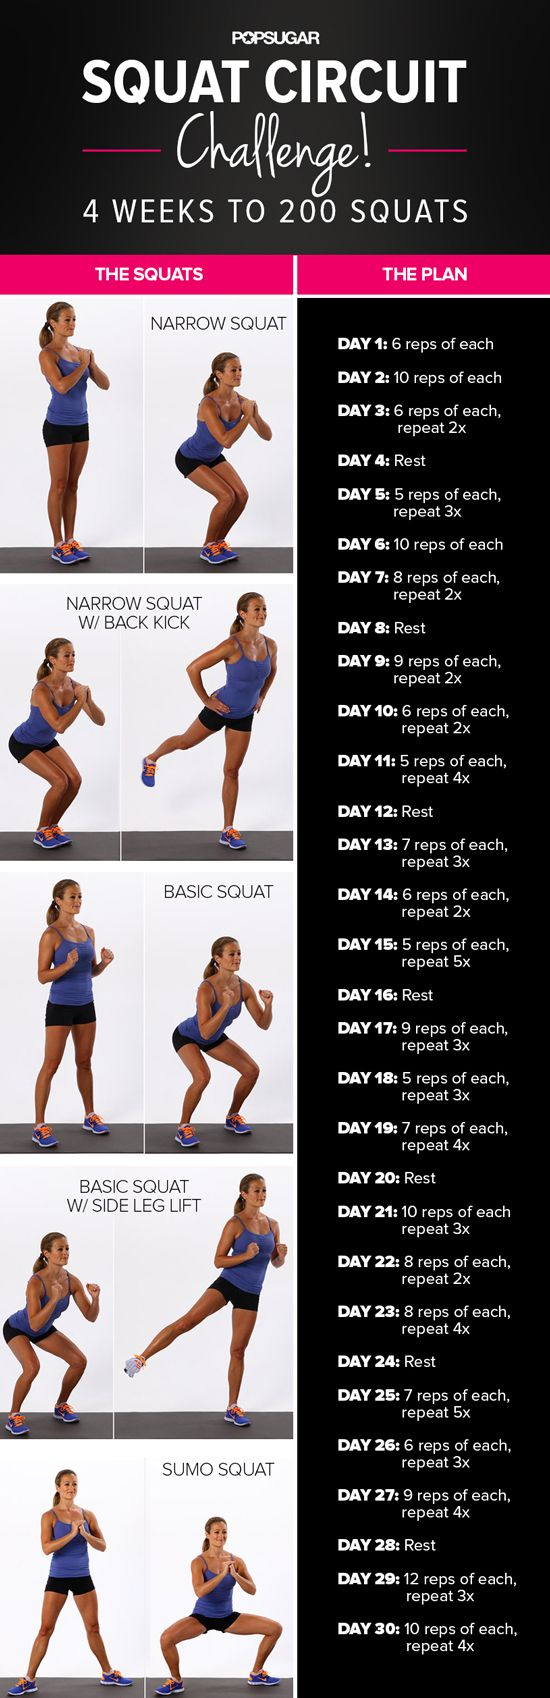 Starting this 30 day Squat Challenge today! :D Let's do this!